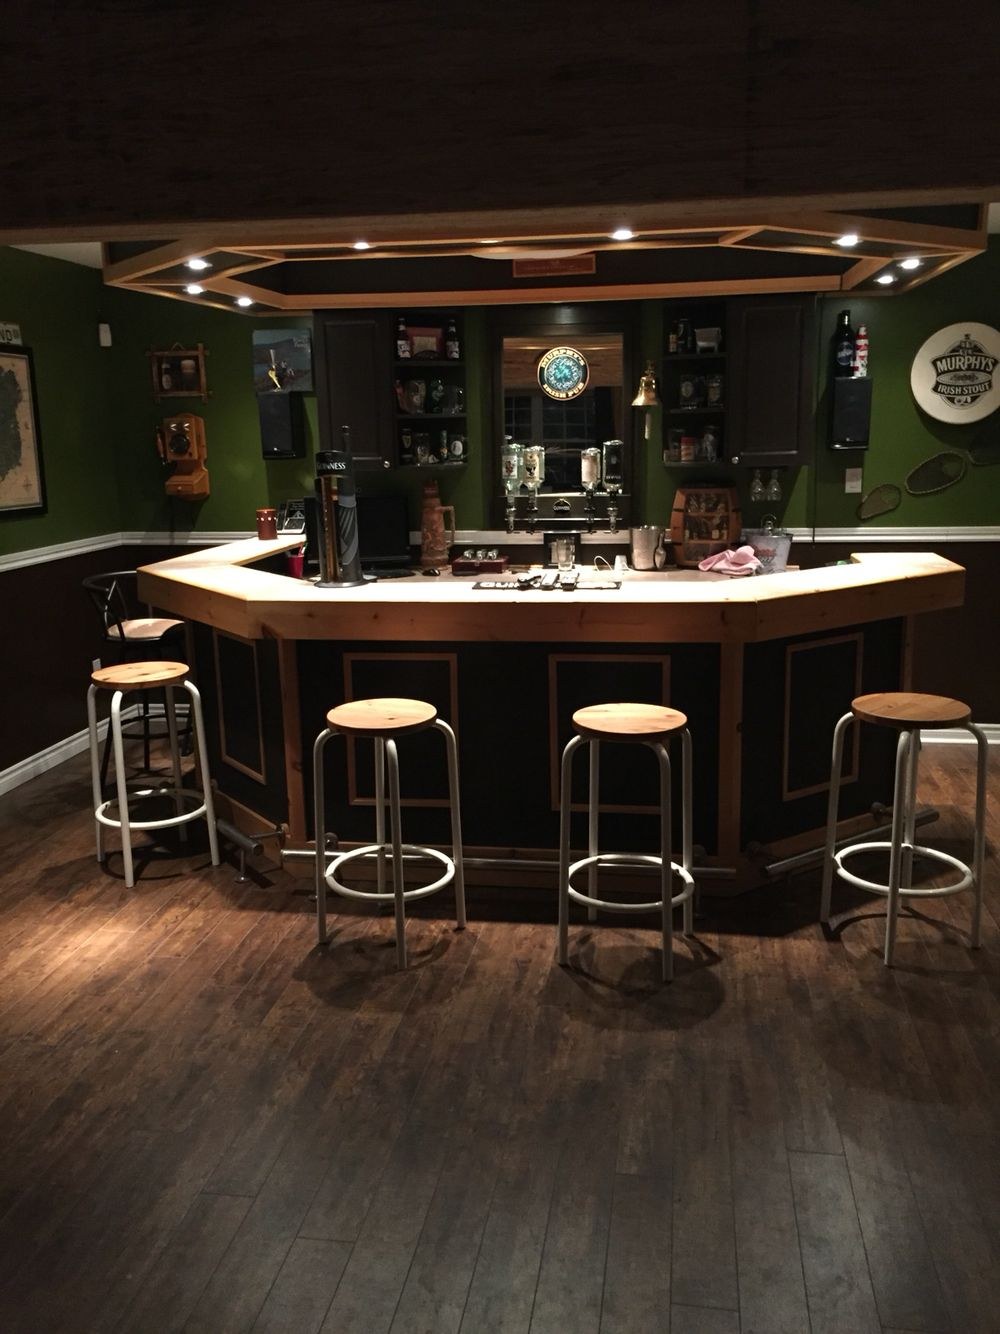 My Irish Pub Bar Pub Bar Small Bars For Home Bars For Home